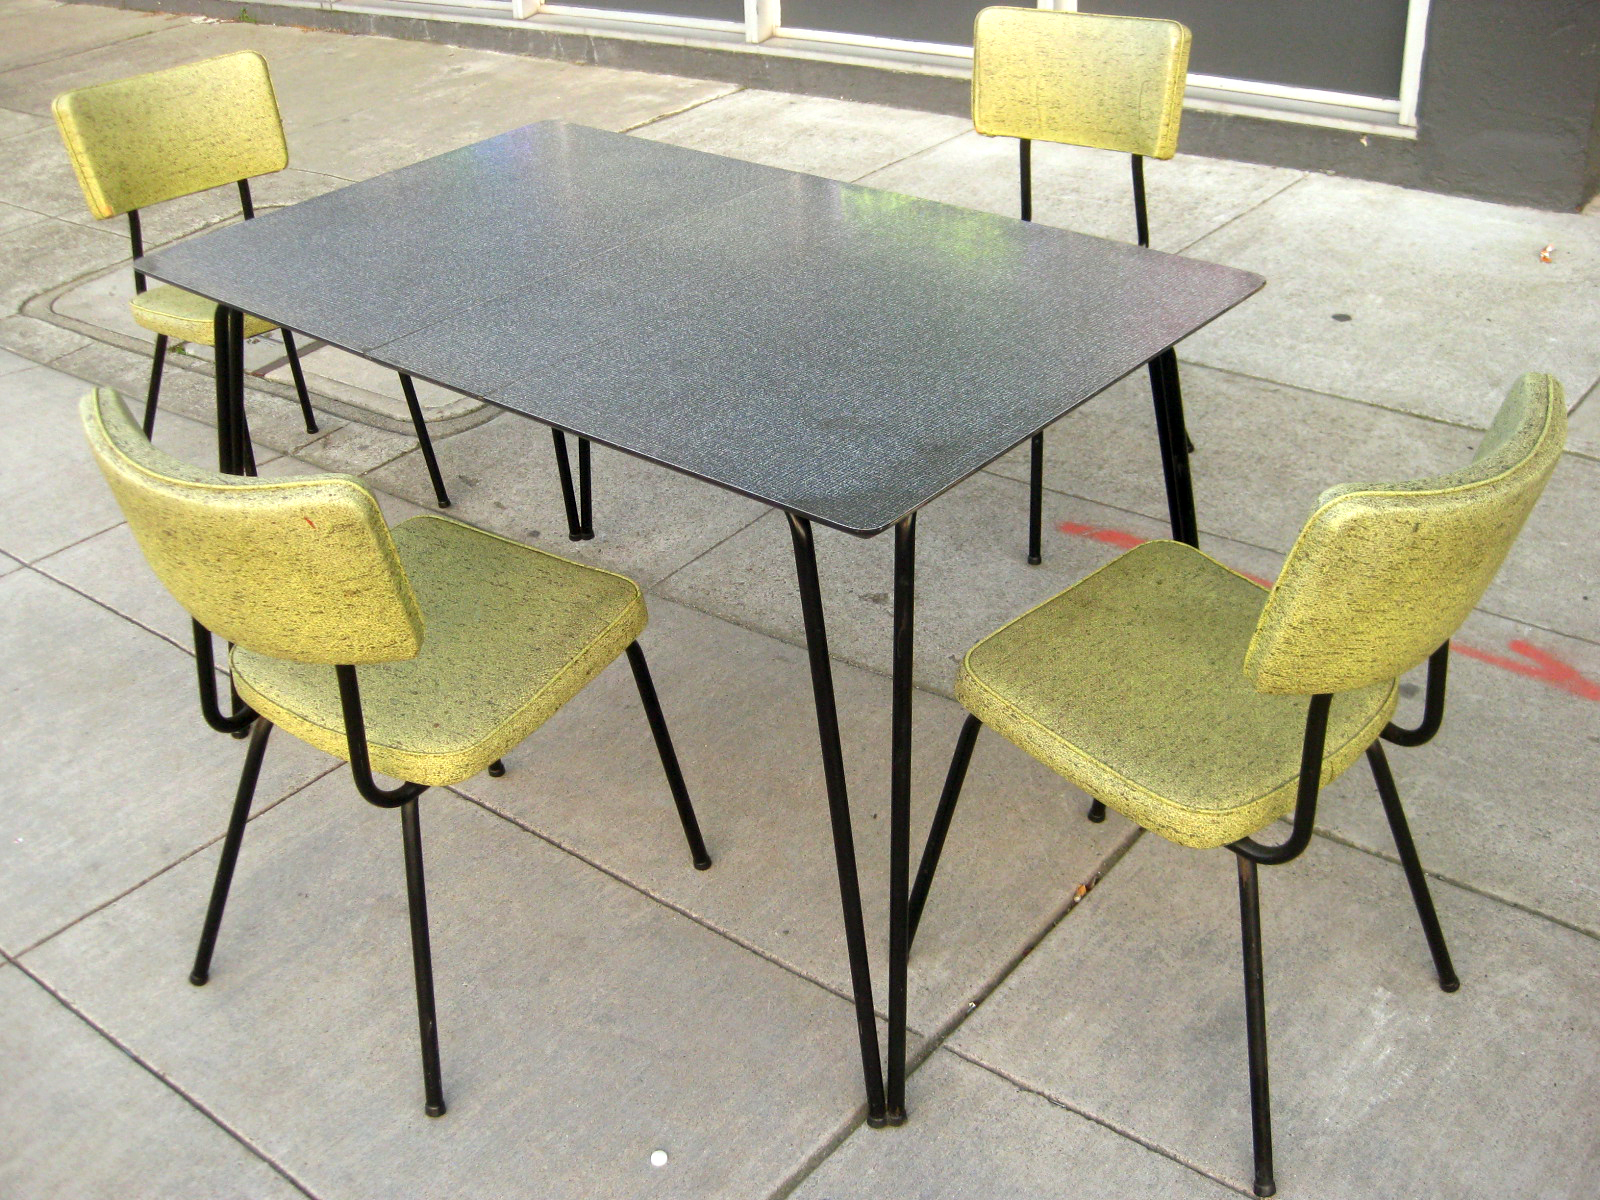 Uhuru furniture collectibles sold 1960s kitchen table for Kitchen table and chairs